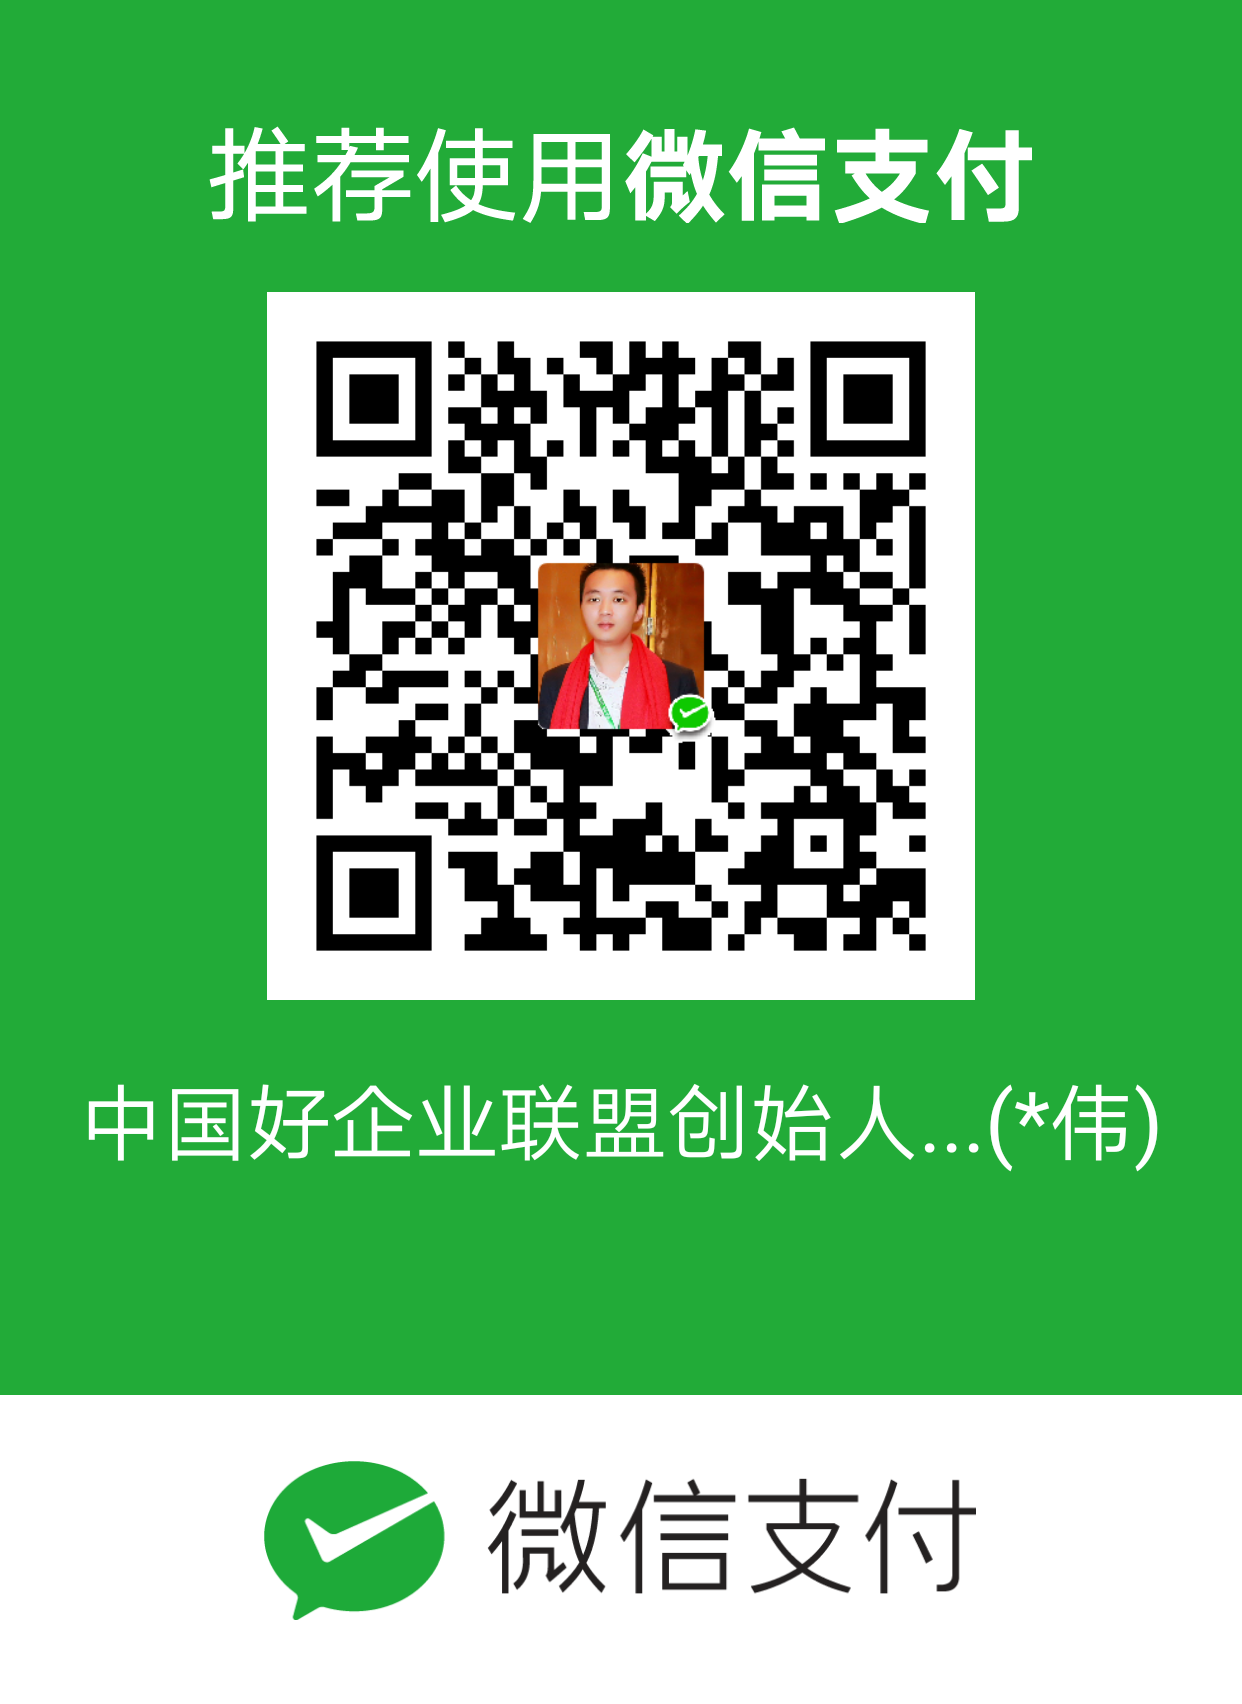 mm_facetoface_collect_qrcode_1544641227701.png